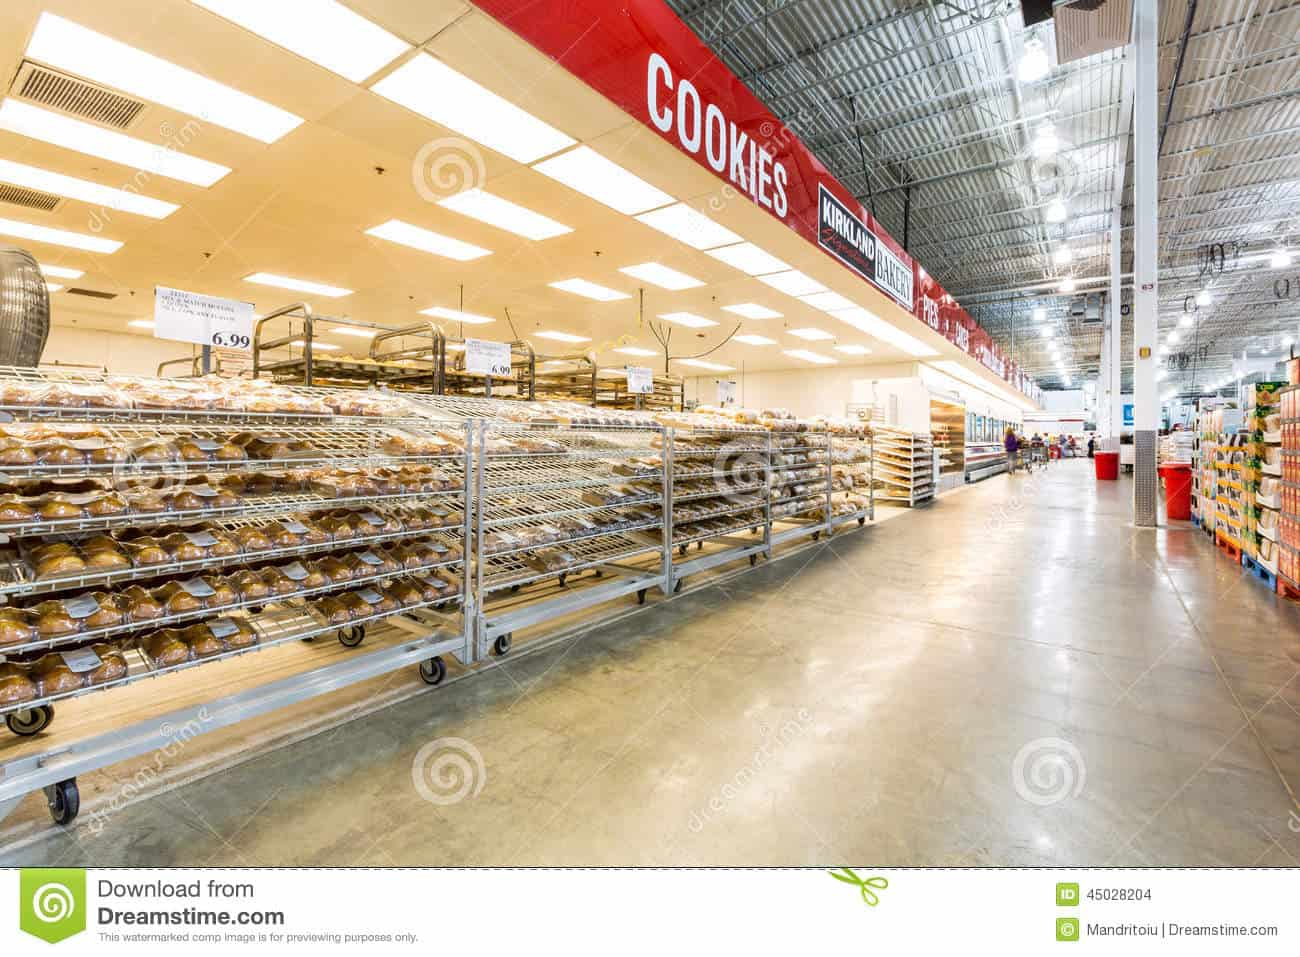 Bakery aisle costco store wholesale corporation membership warehouse bakery aisle costco store wholesale corporation membership warehouse club second largest retailer usa 45028204 thecheapjerseys Images